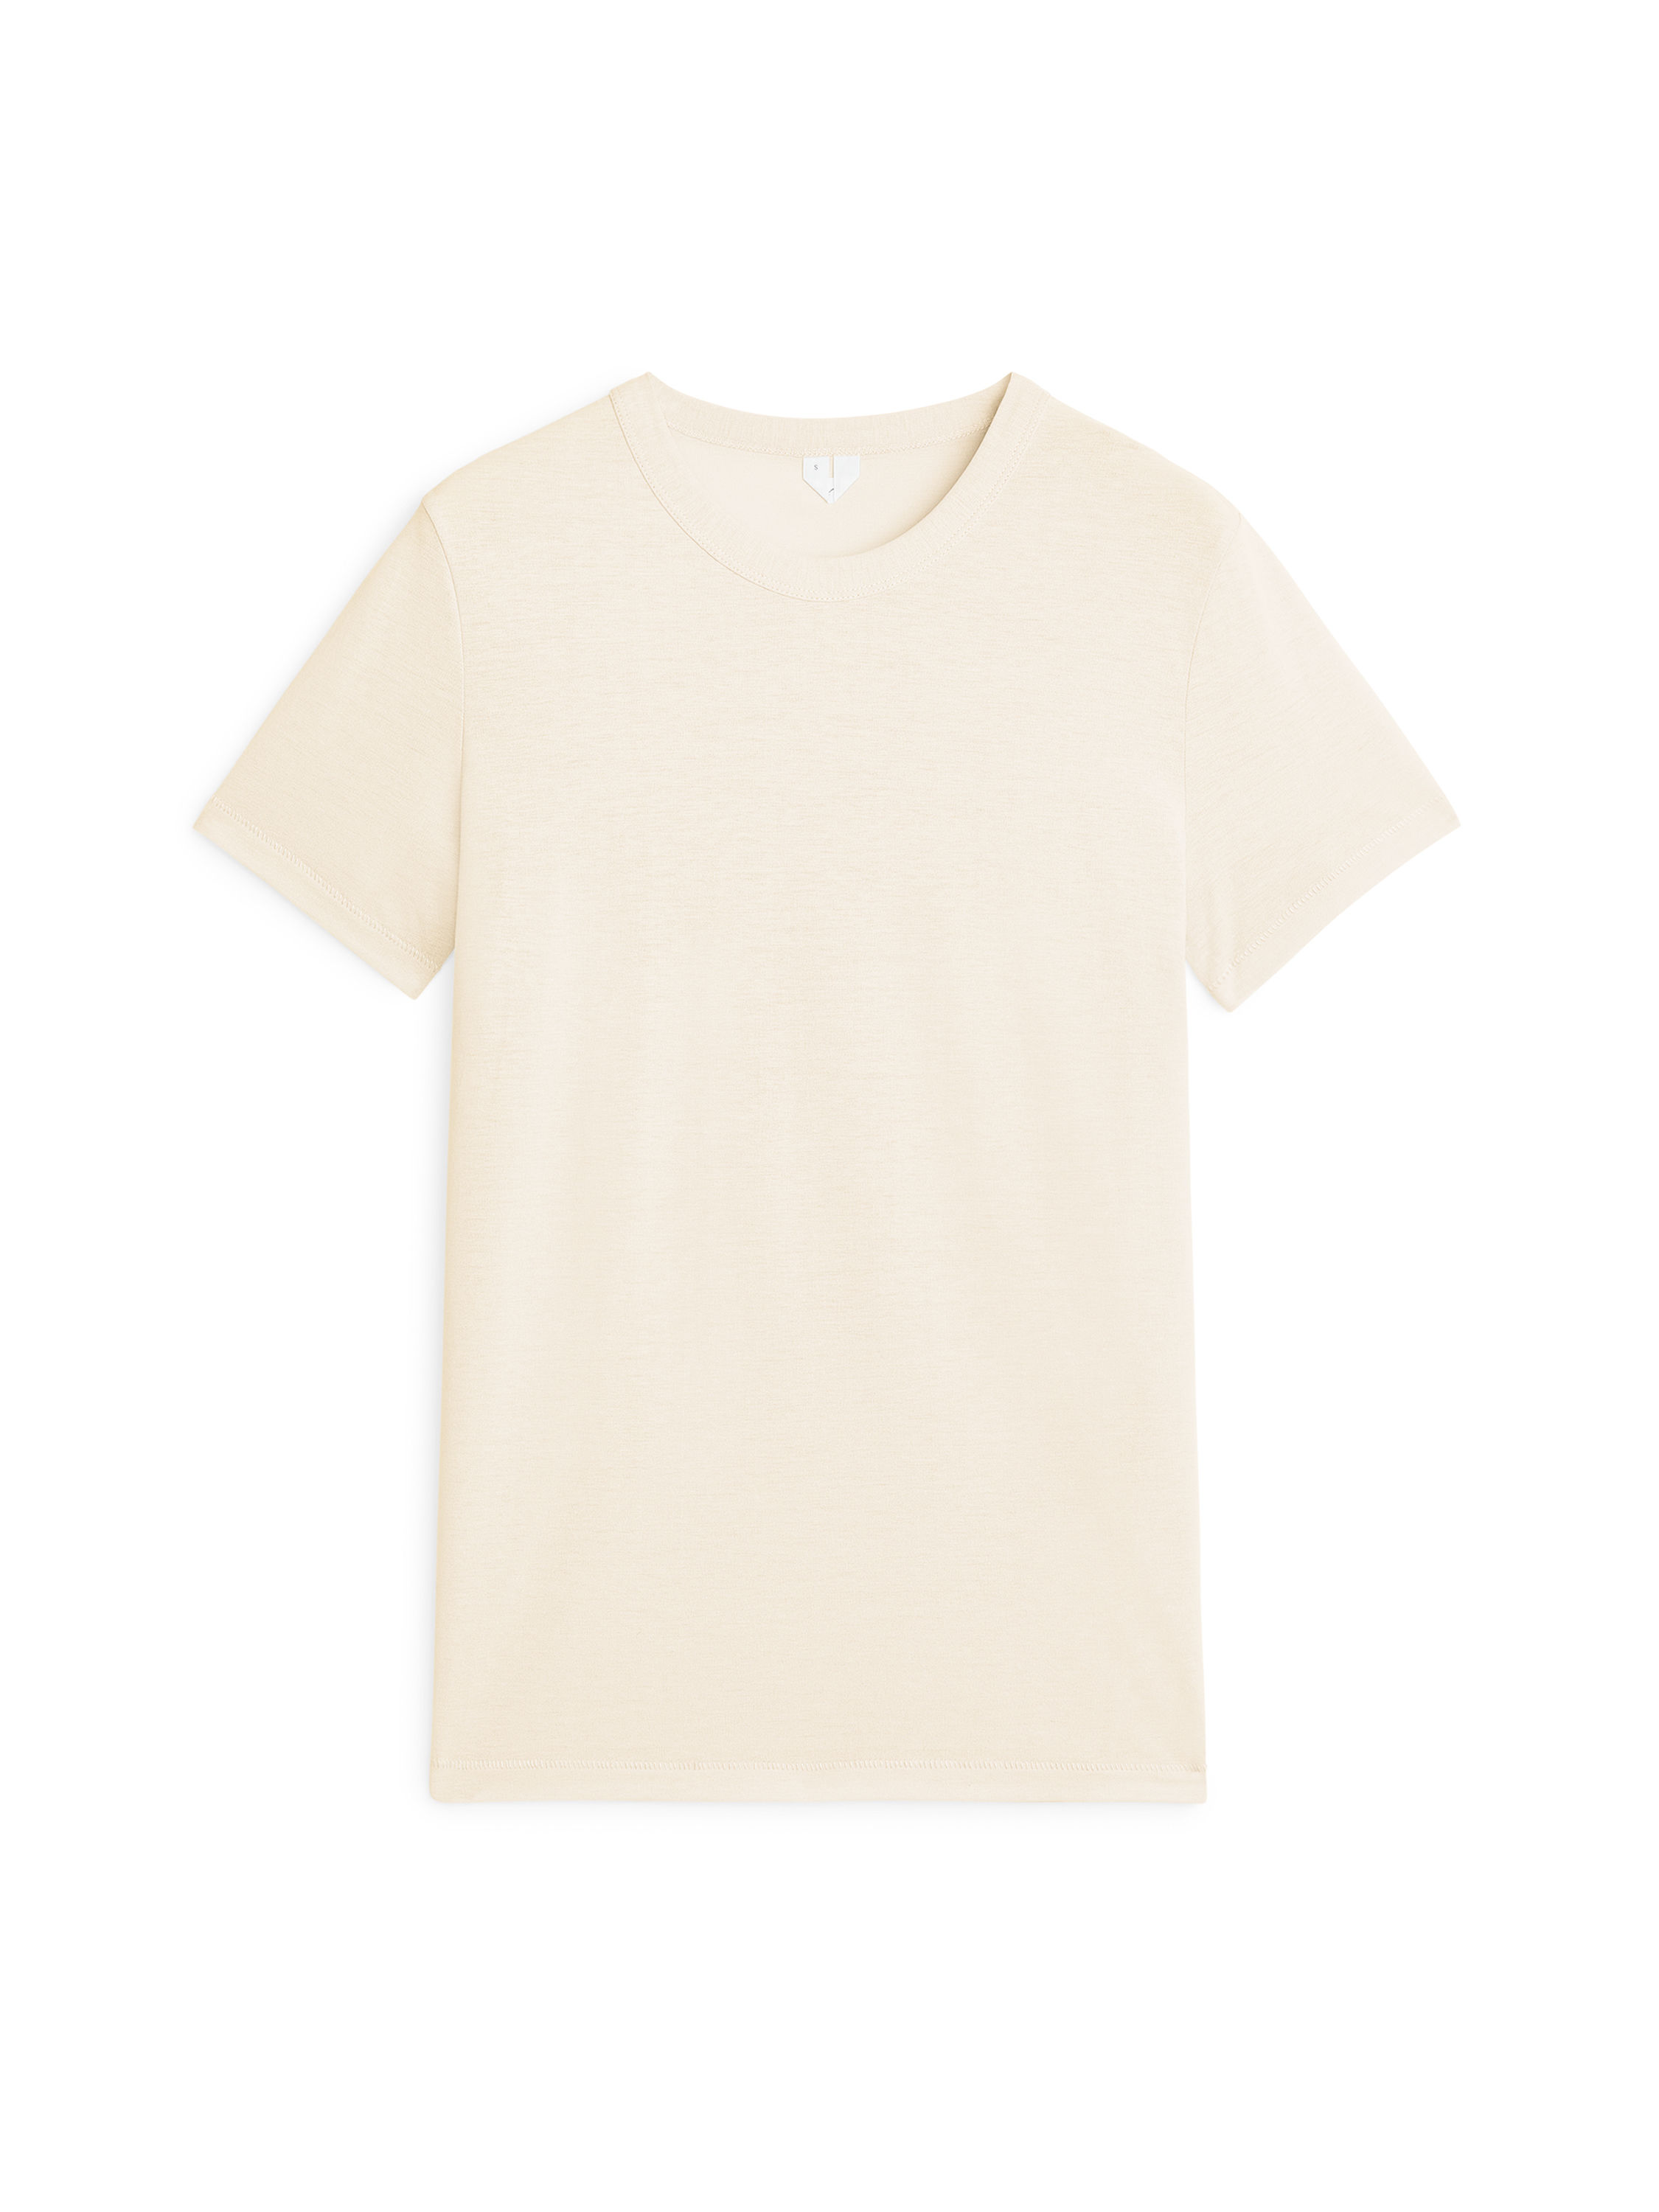 Fabric Swatch image of Arket ice crepe t-shirt in white